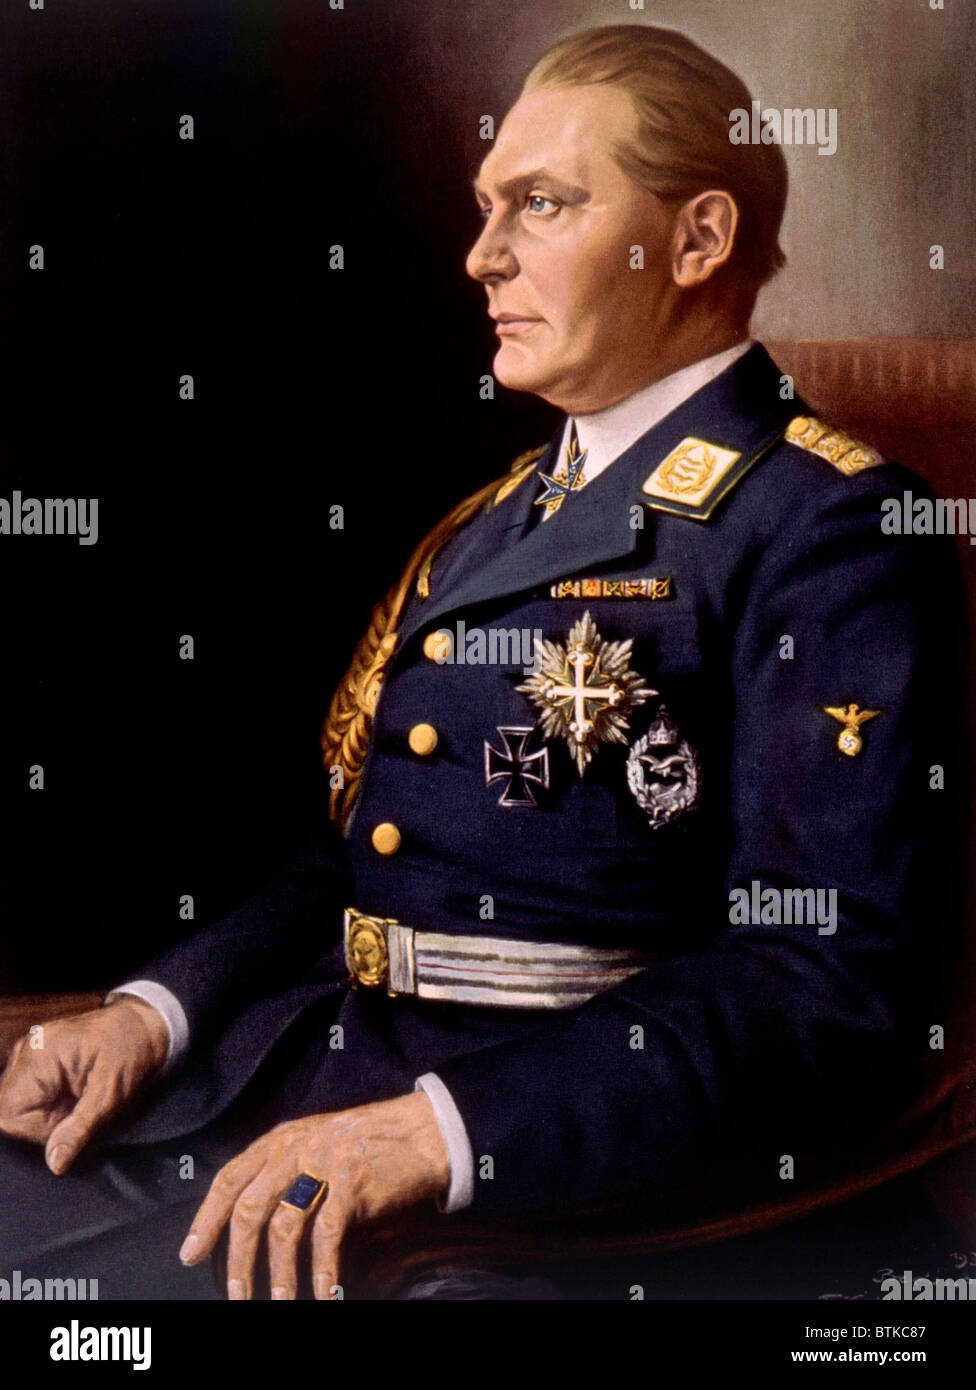 Hermann Goering, (1893-1946), German politician and military leader and leading member of the Nazi Party. 1934 painting Stock Photo